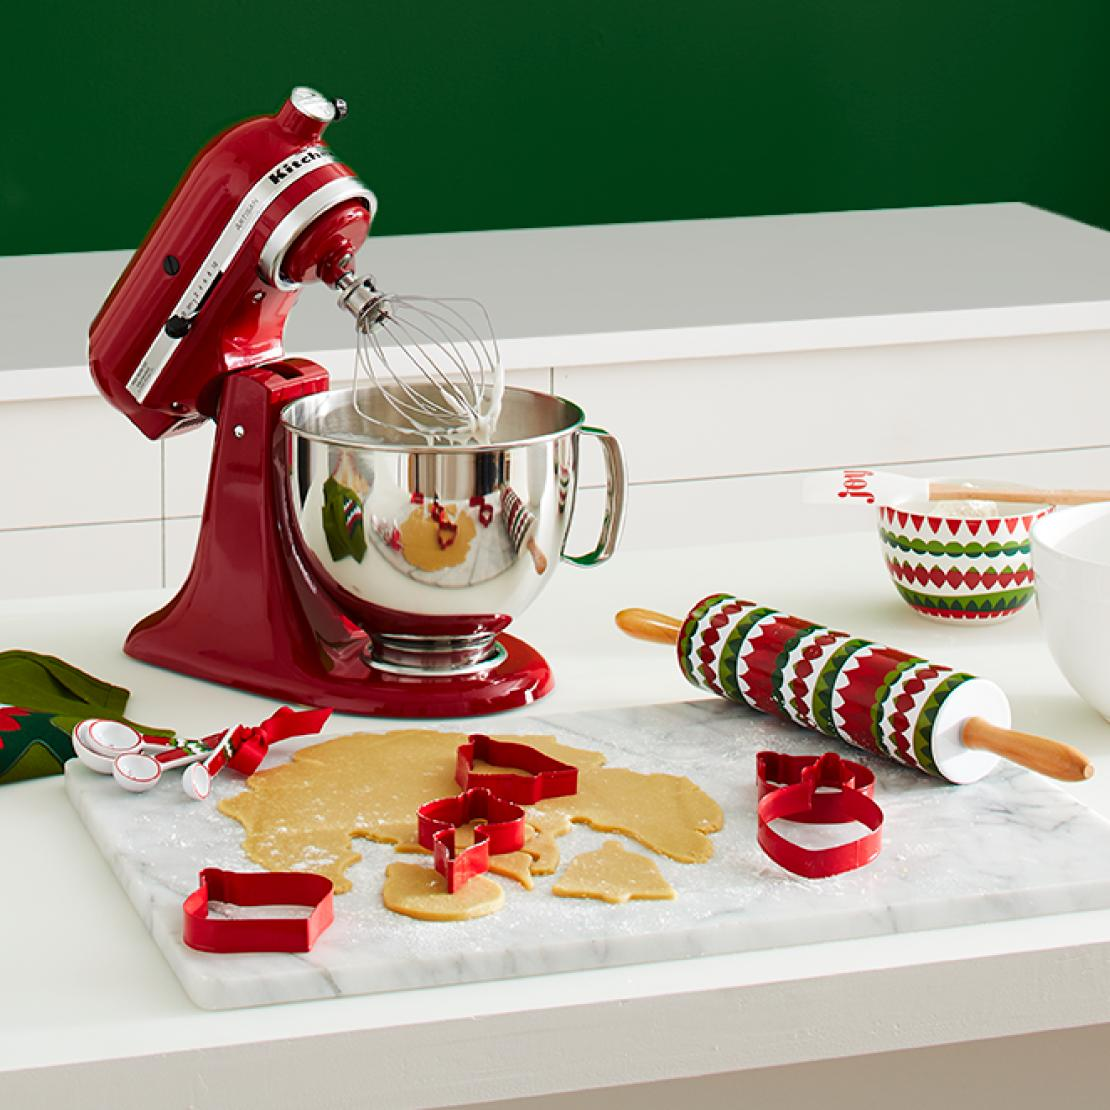 Christmas Decorations For Hearth, Home & Table